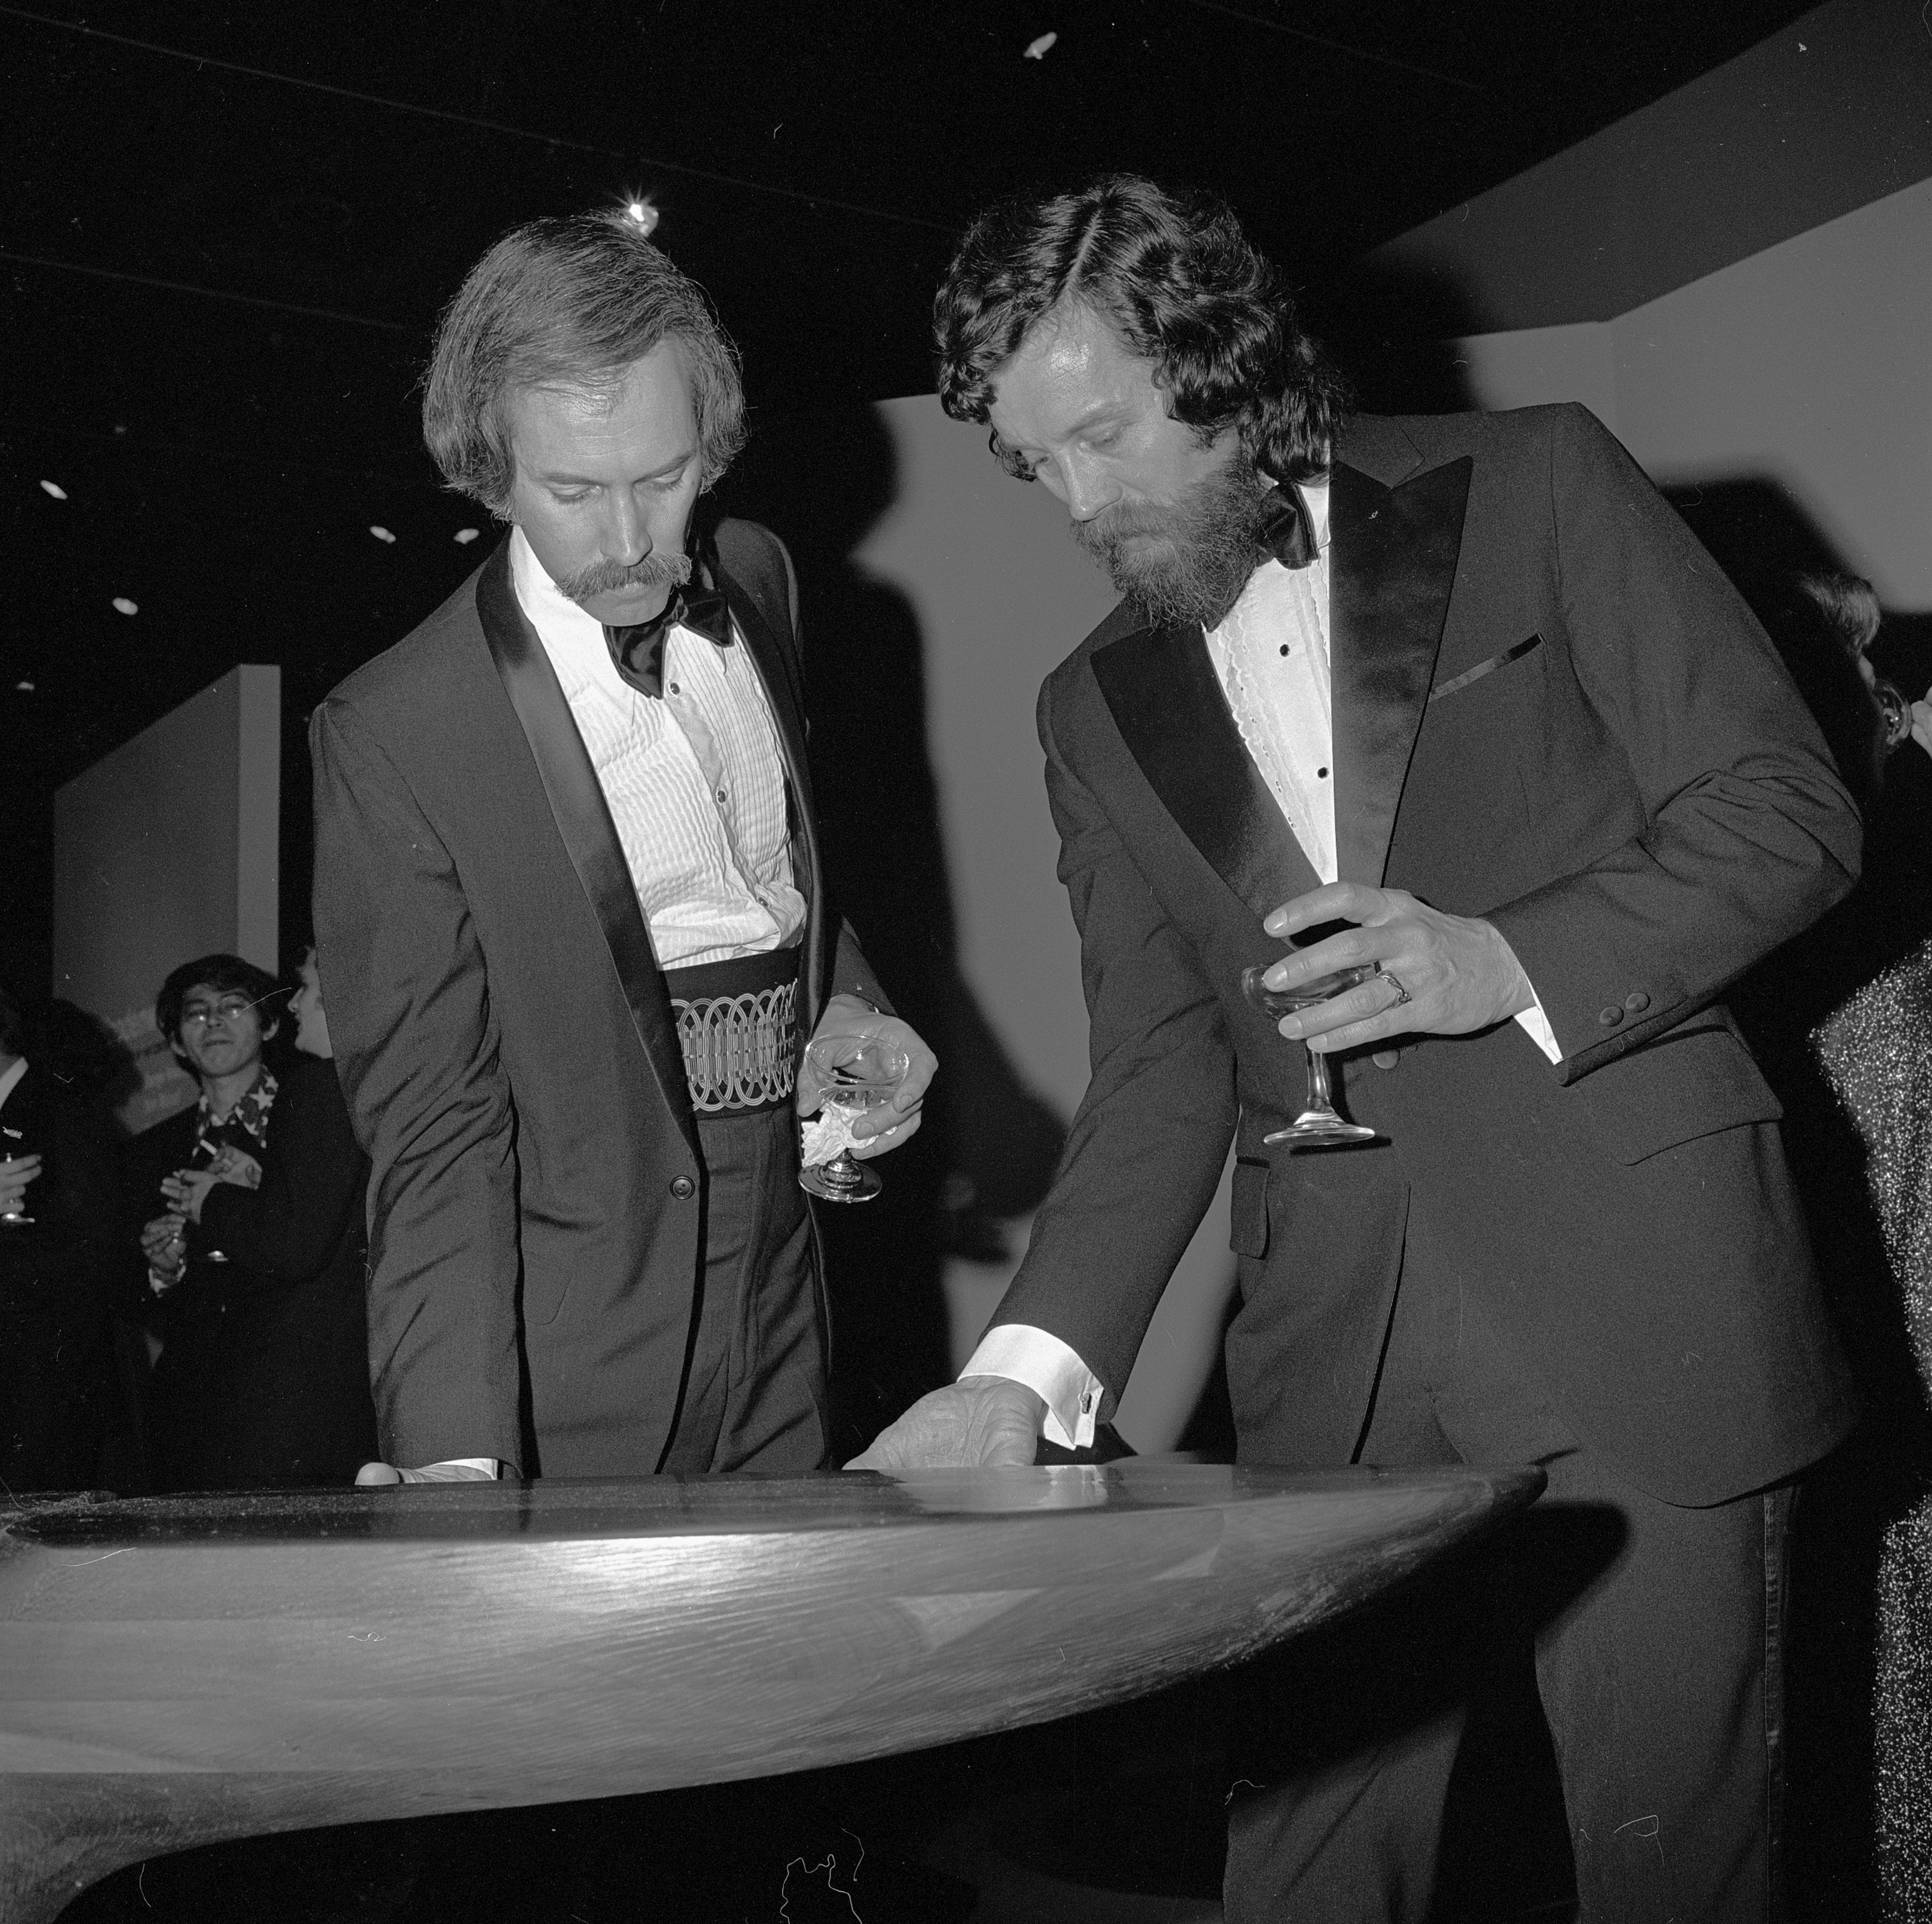 Two men stand over a wooden table. Both are holding drinks.